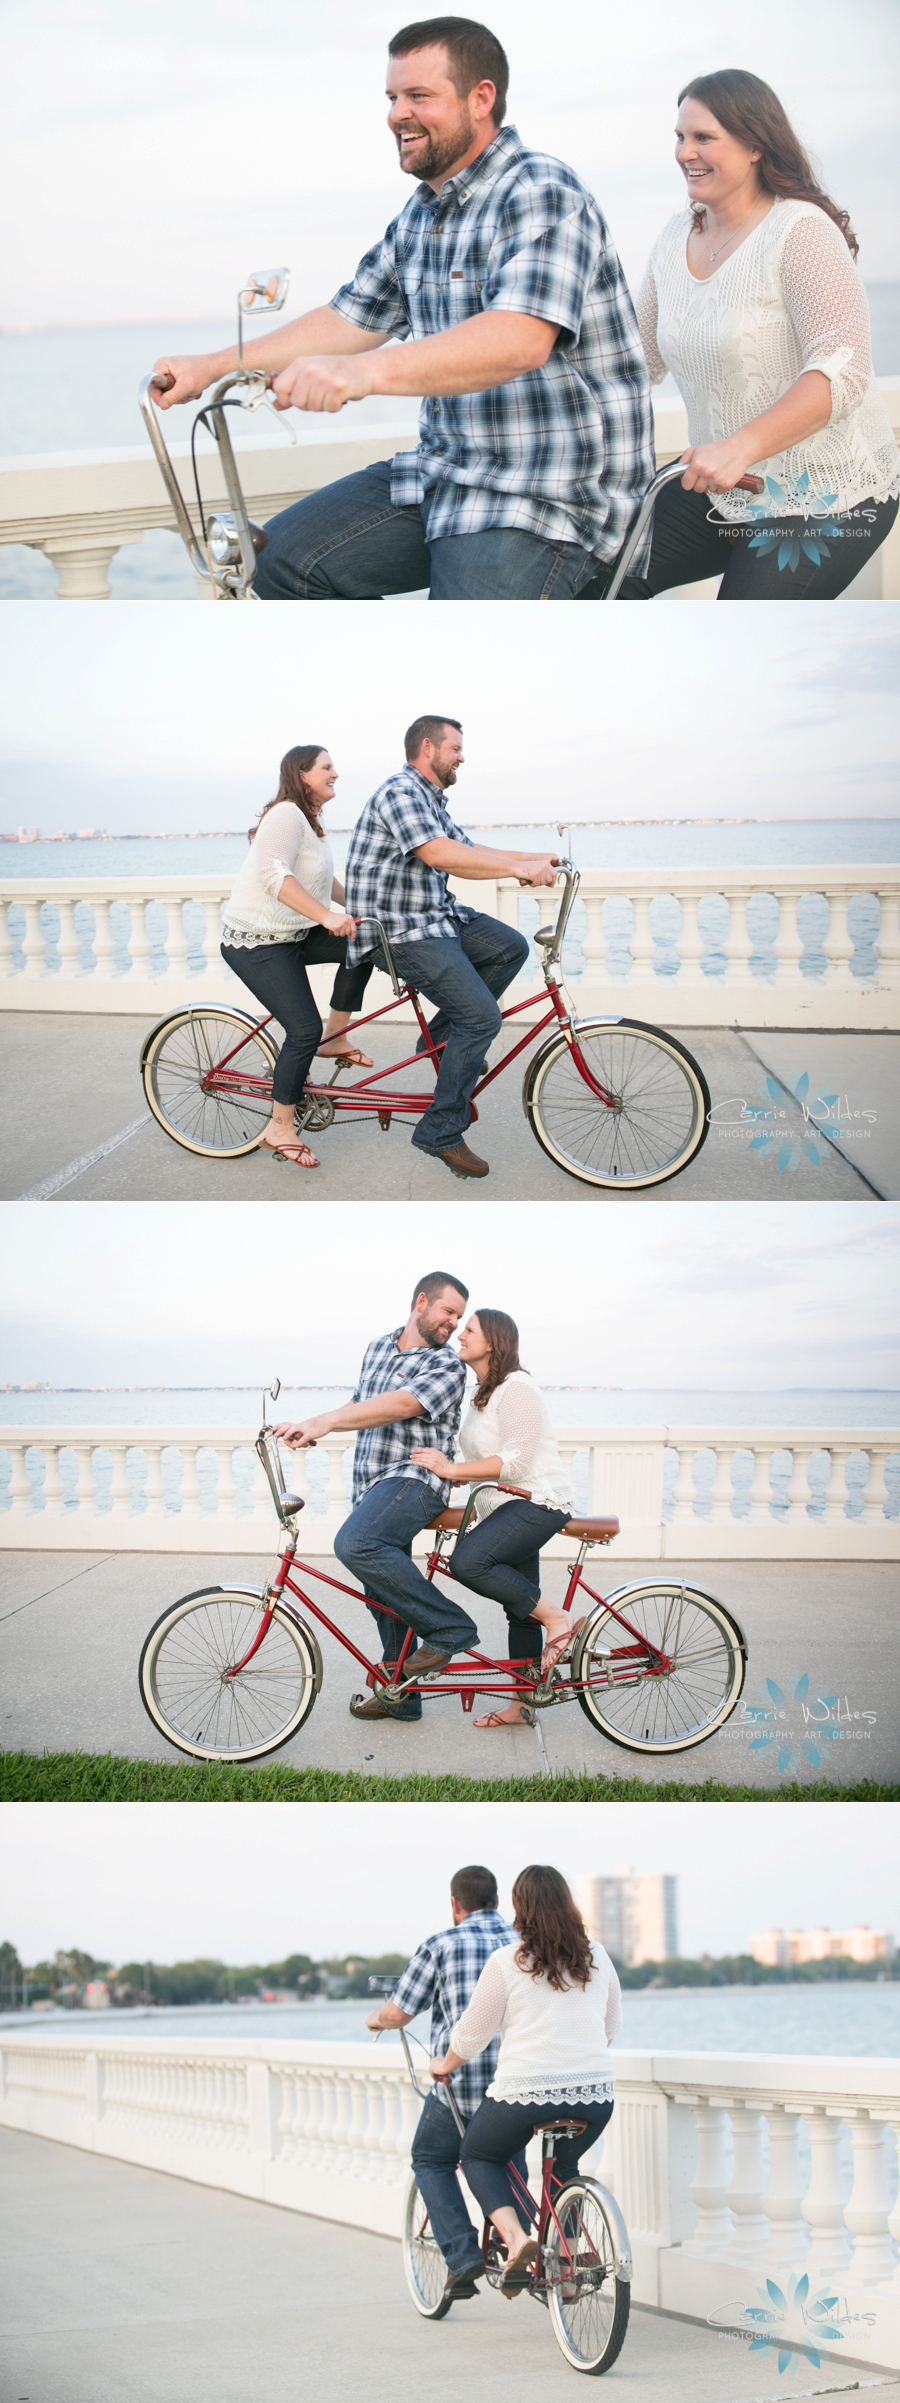 4_9_18 Christine and Matt Bayshore Blvd Tampa Engagement Session_0004.jpg